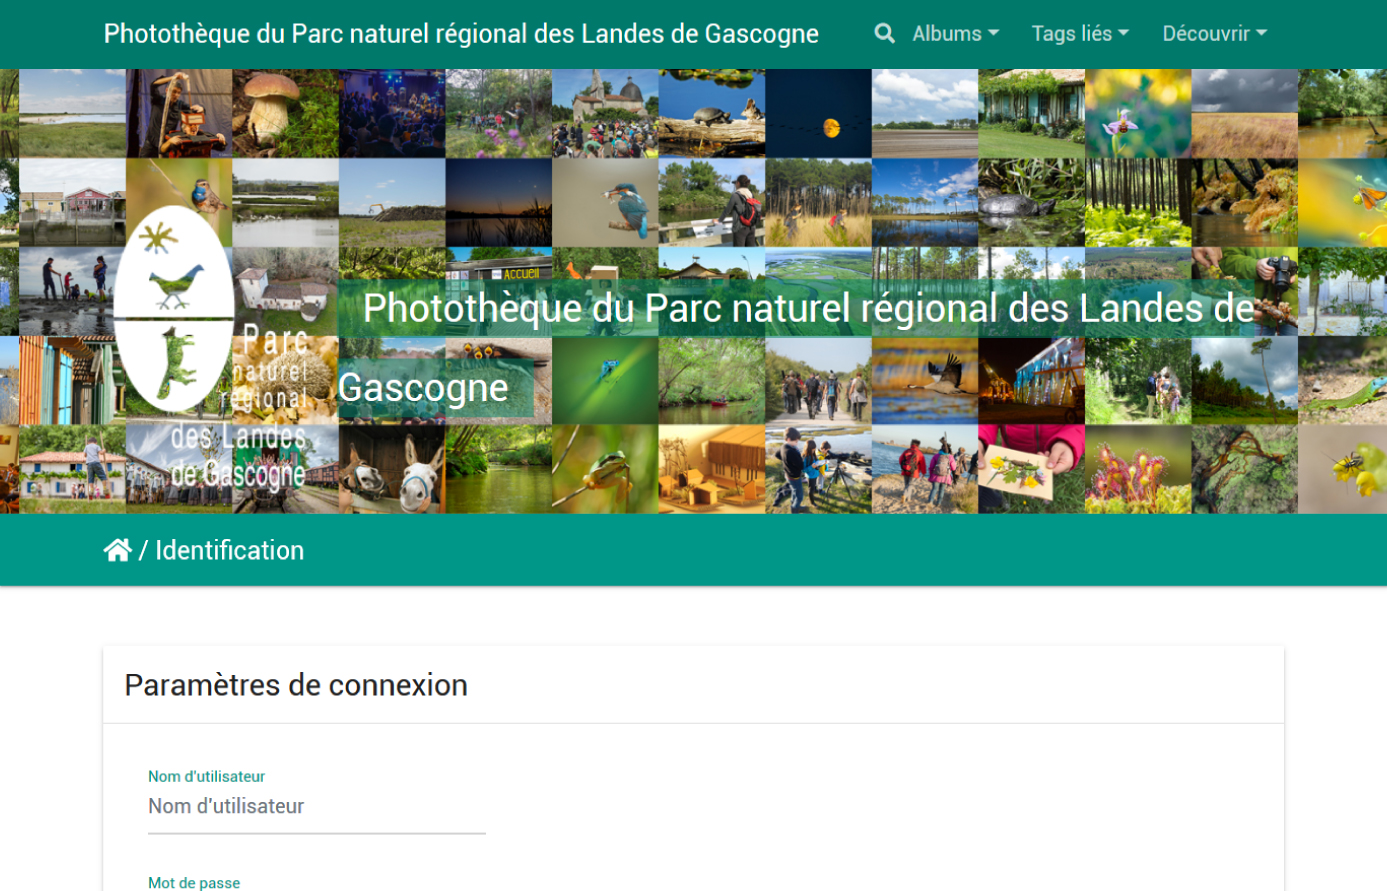 The Regional Natural Park Landes de Gascogne